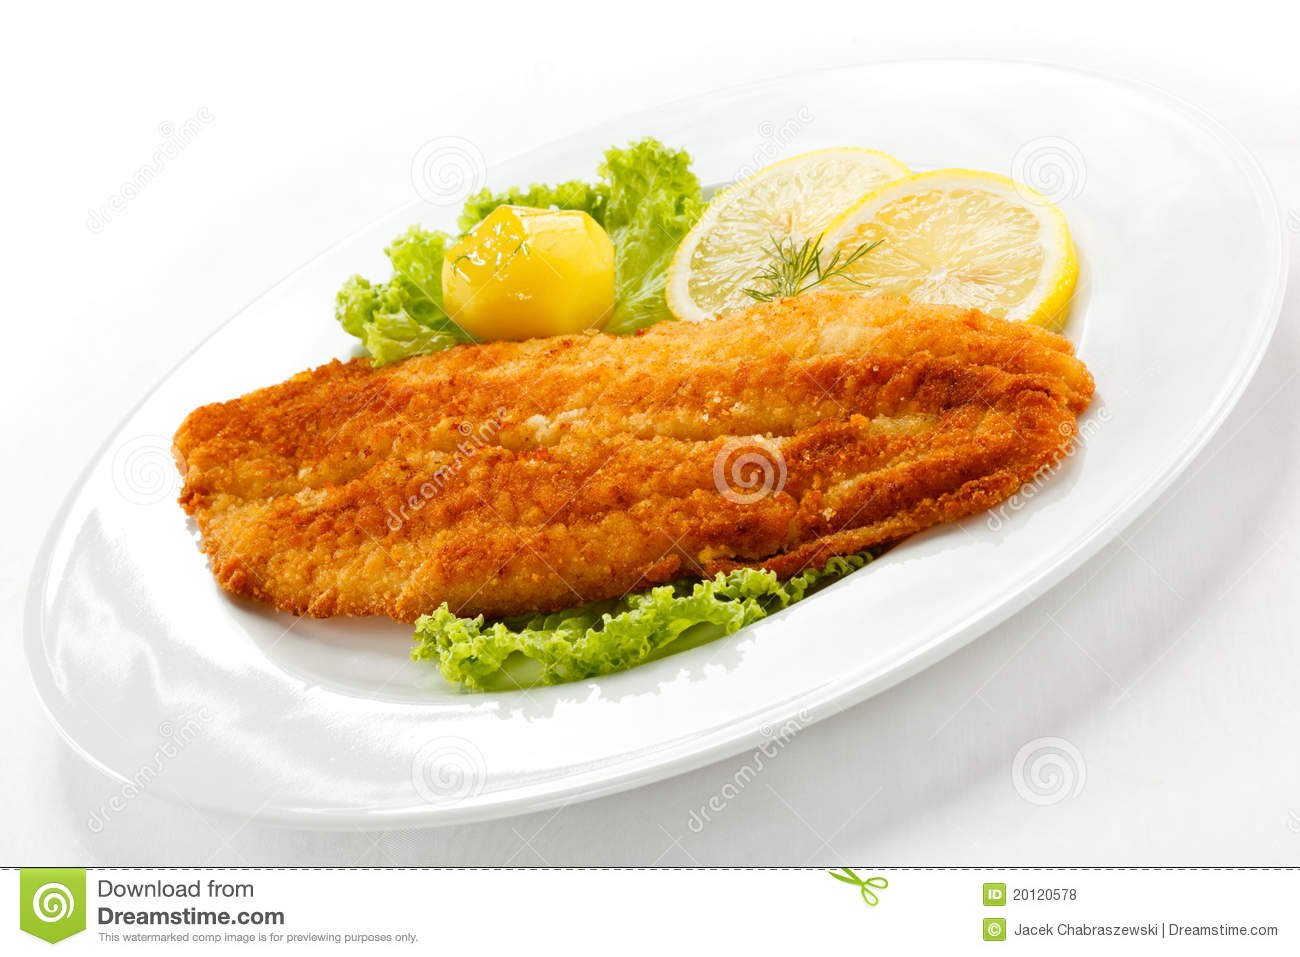 Fried fish fillet royalty free stock photos image 20120578 for Fried fish fillet